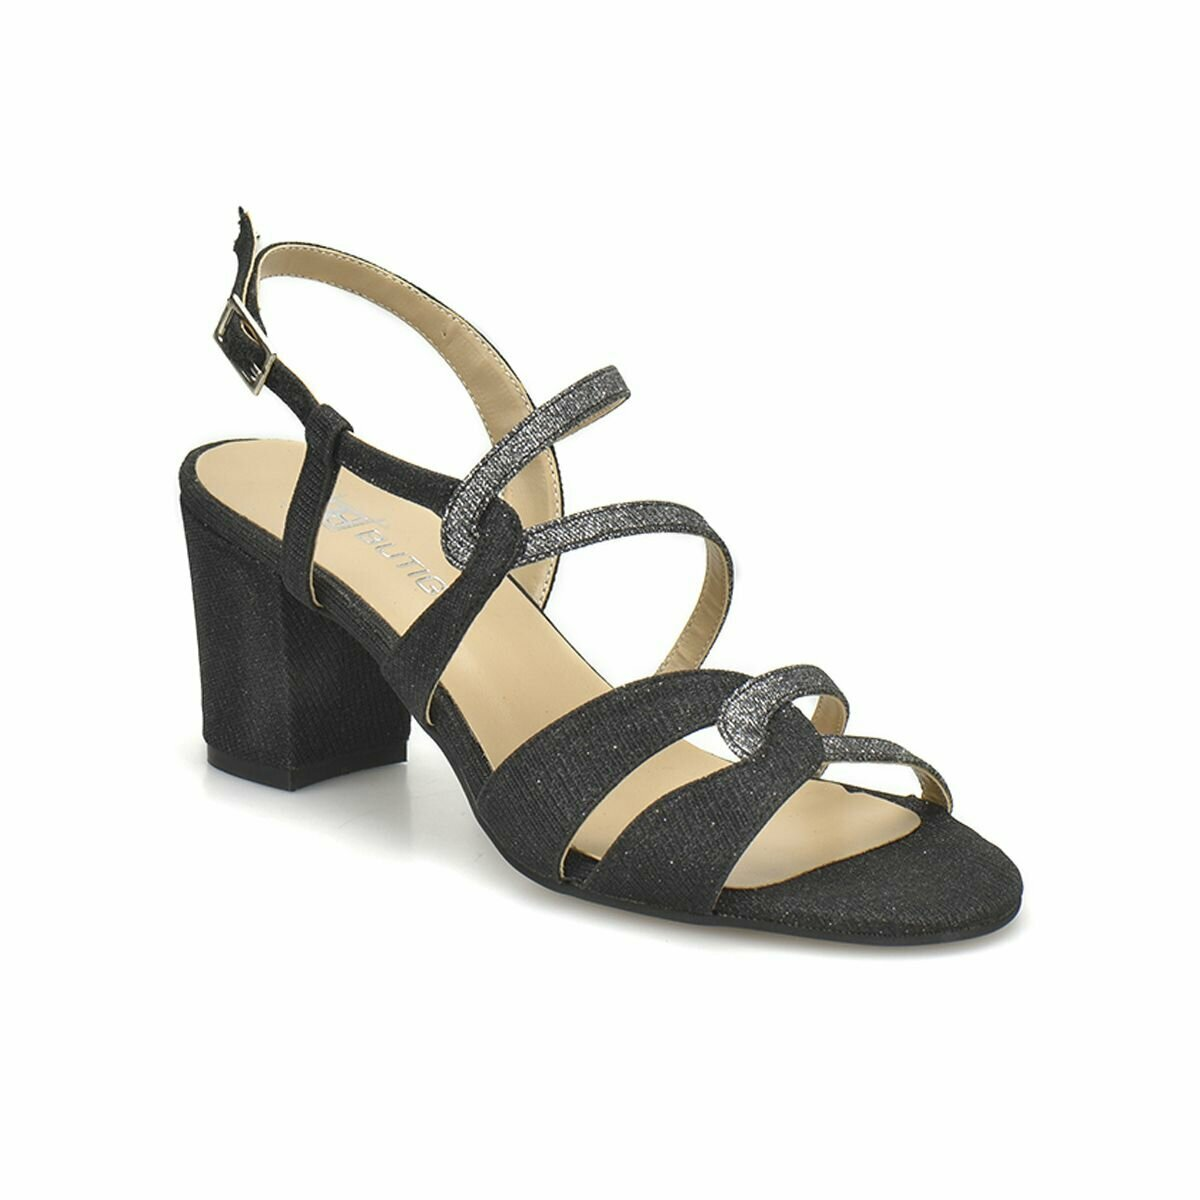 FLO 18S-153 Black Women Shoes BUTIGO